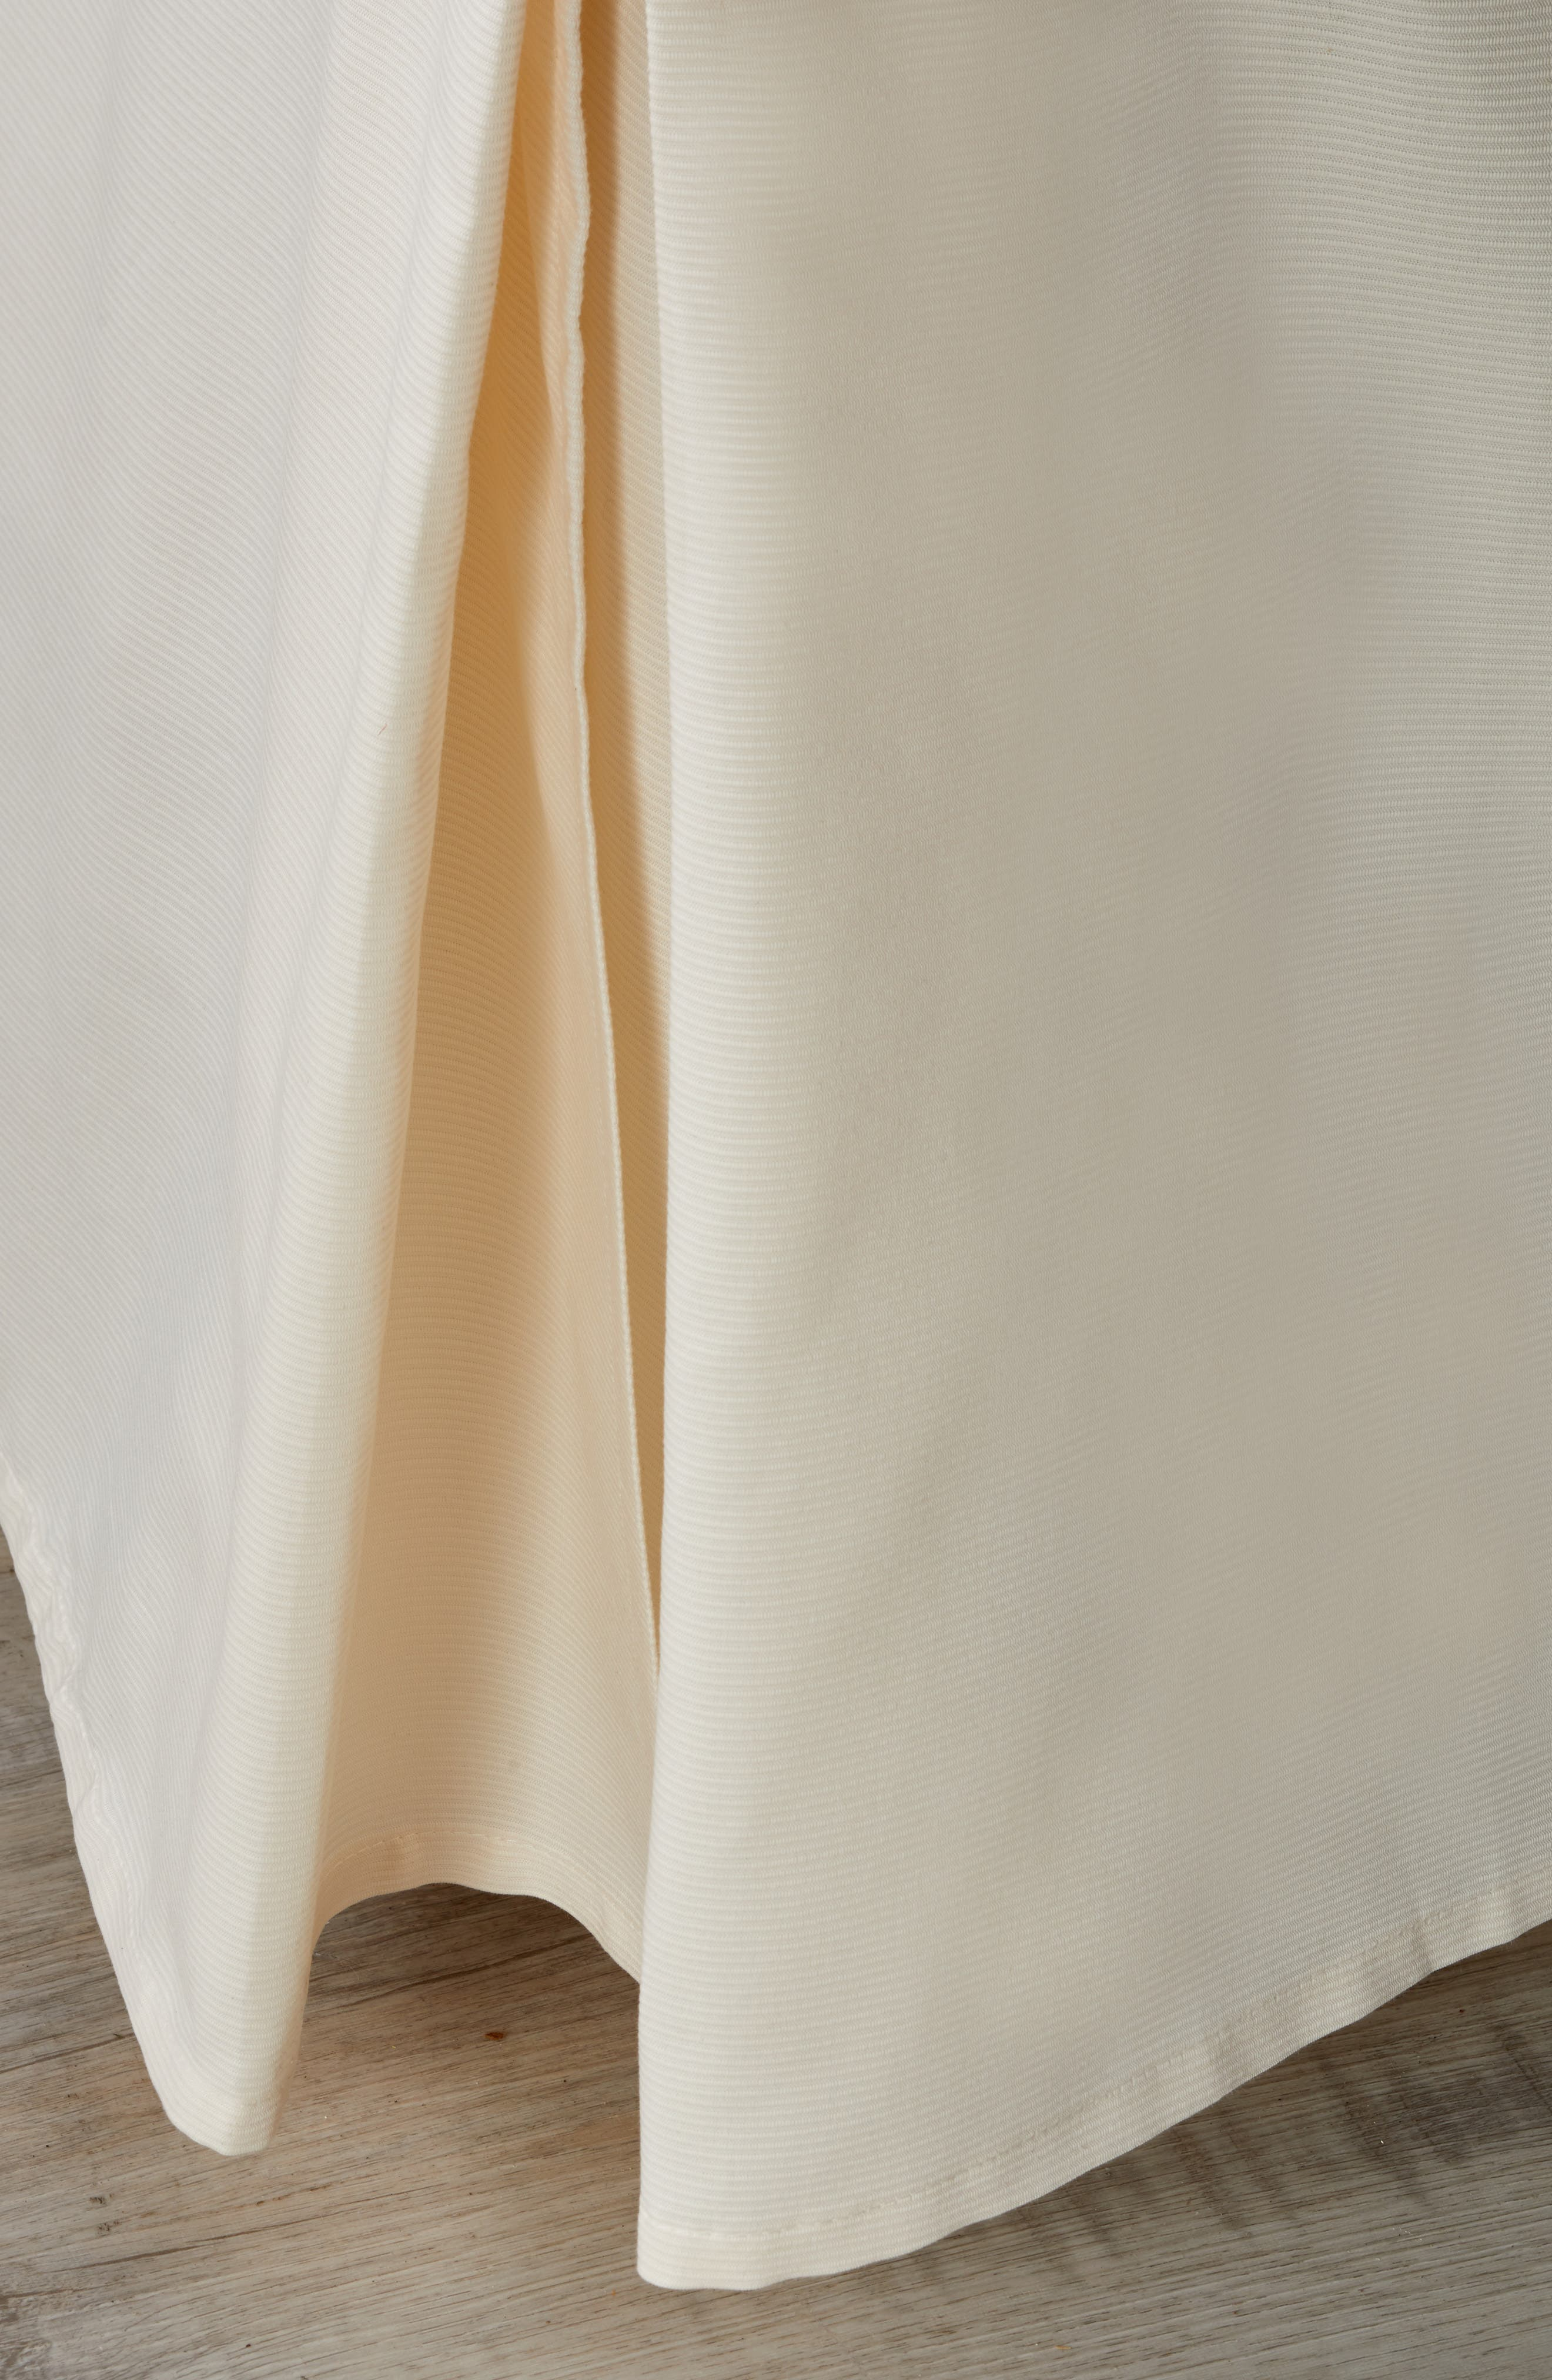 Alternate Image 1 Selected - Vera Wang Woven Rib Bed Skirt